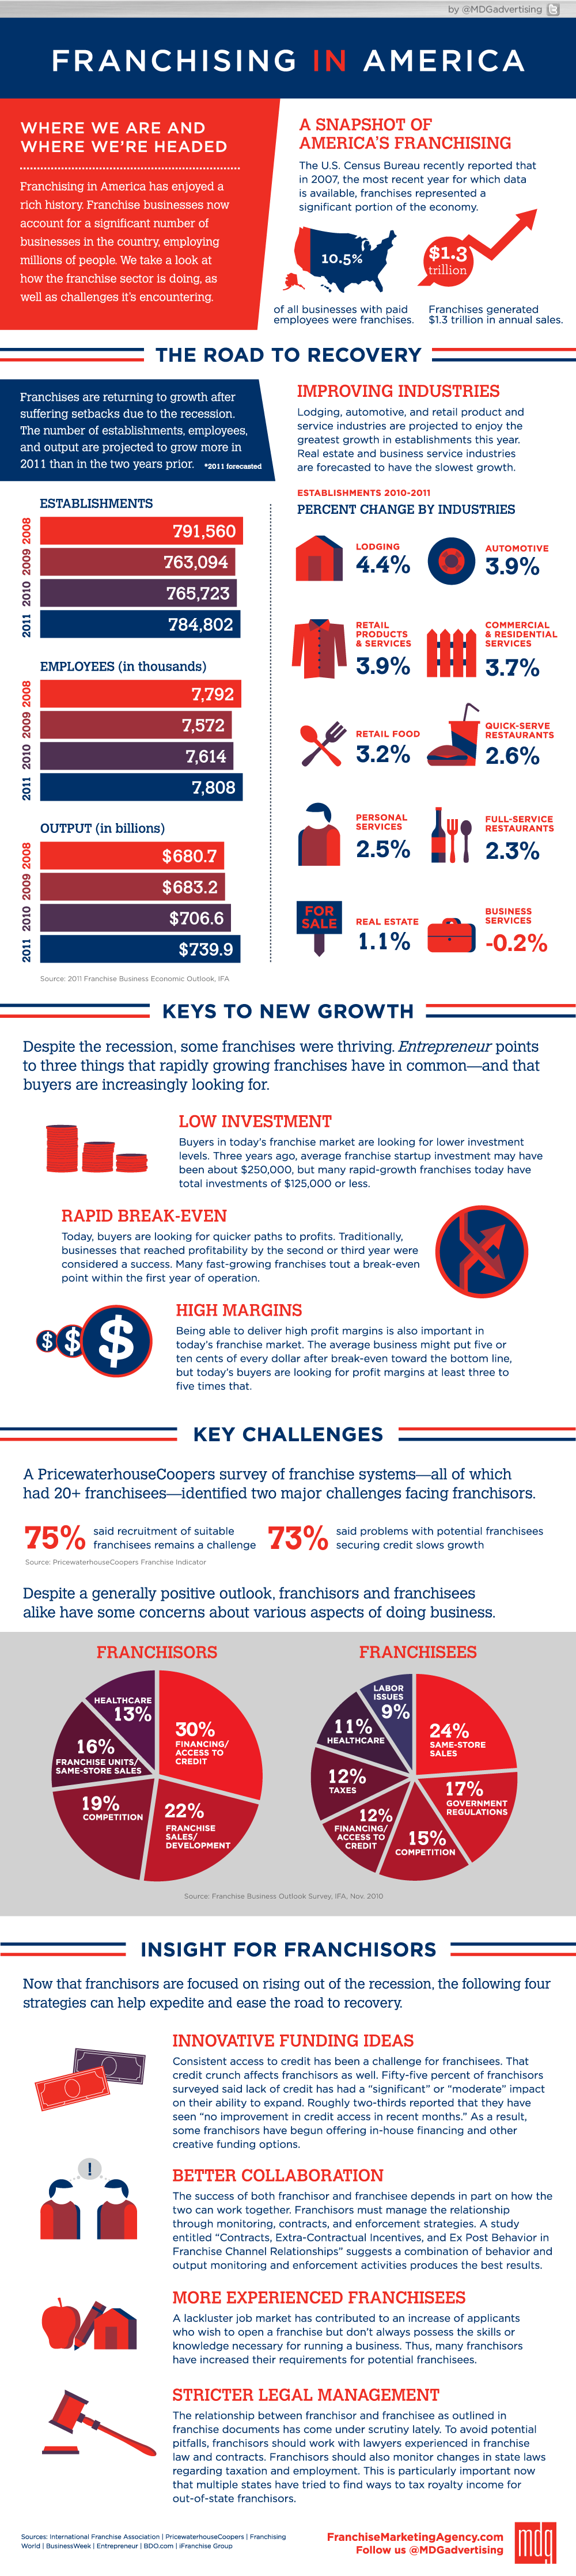 Infographic: Franchising In America